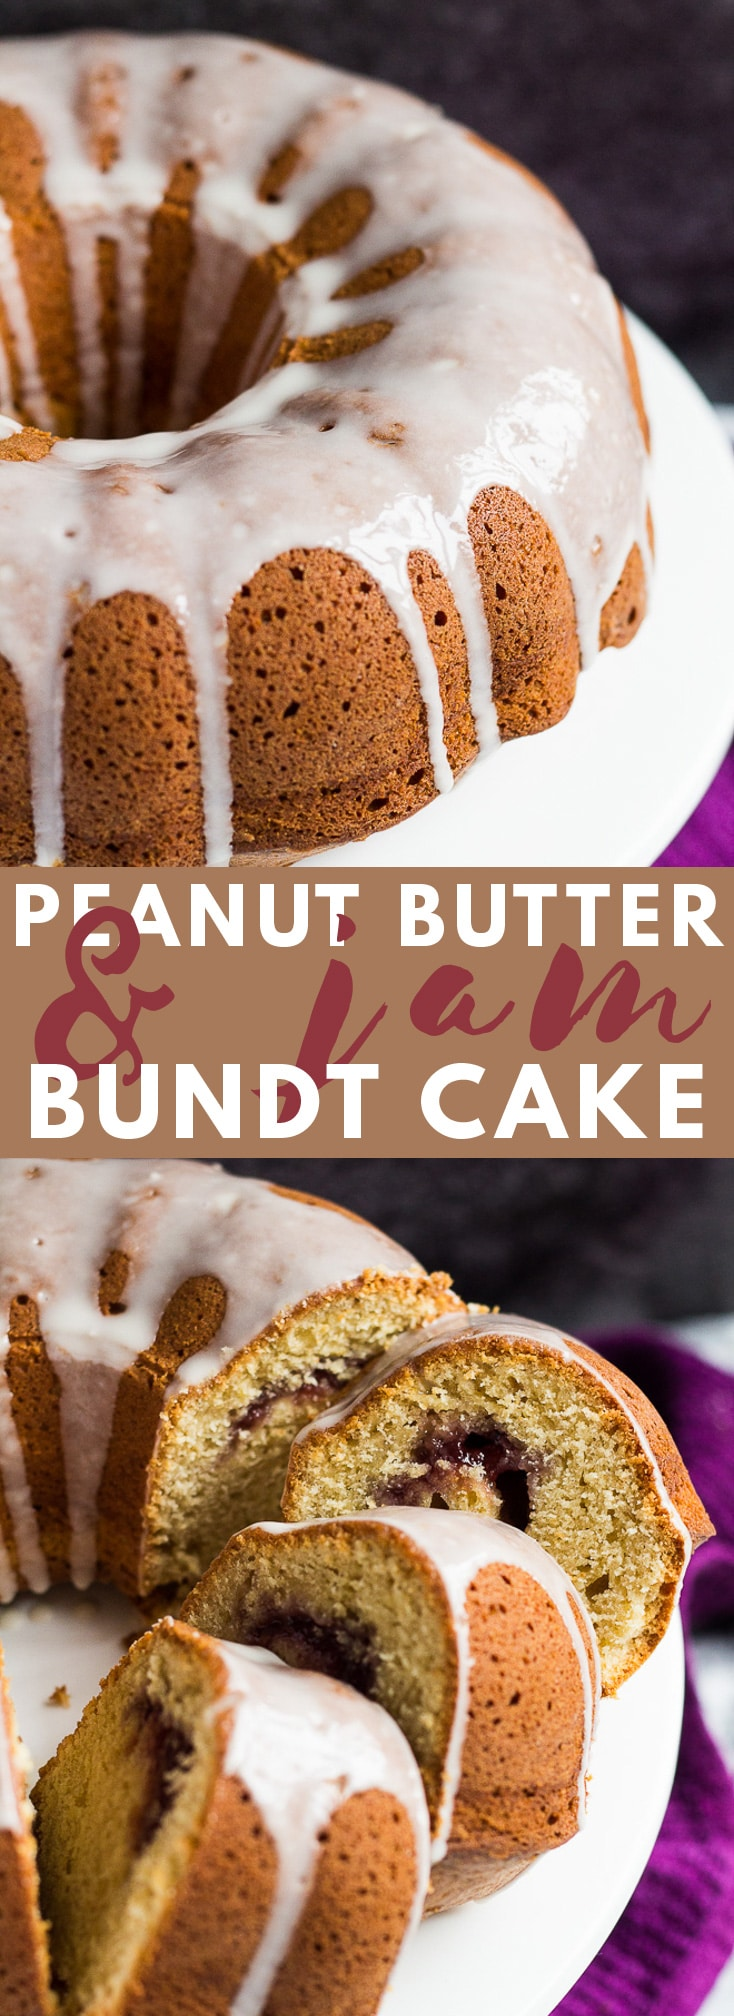 Peanut Butter and Jam Bundt Cake - A scrumptiously moist and fluffy peanut butter flavoured bundt cake swirled with a strawberry jam filling! #peanutbutter #jam #bundtcake #cakerecipes